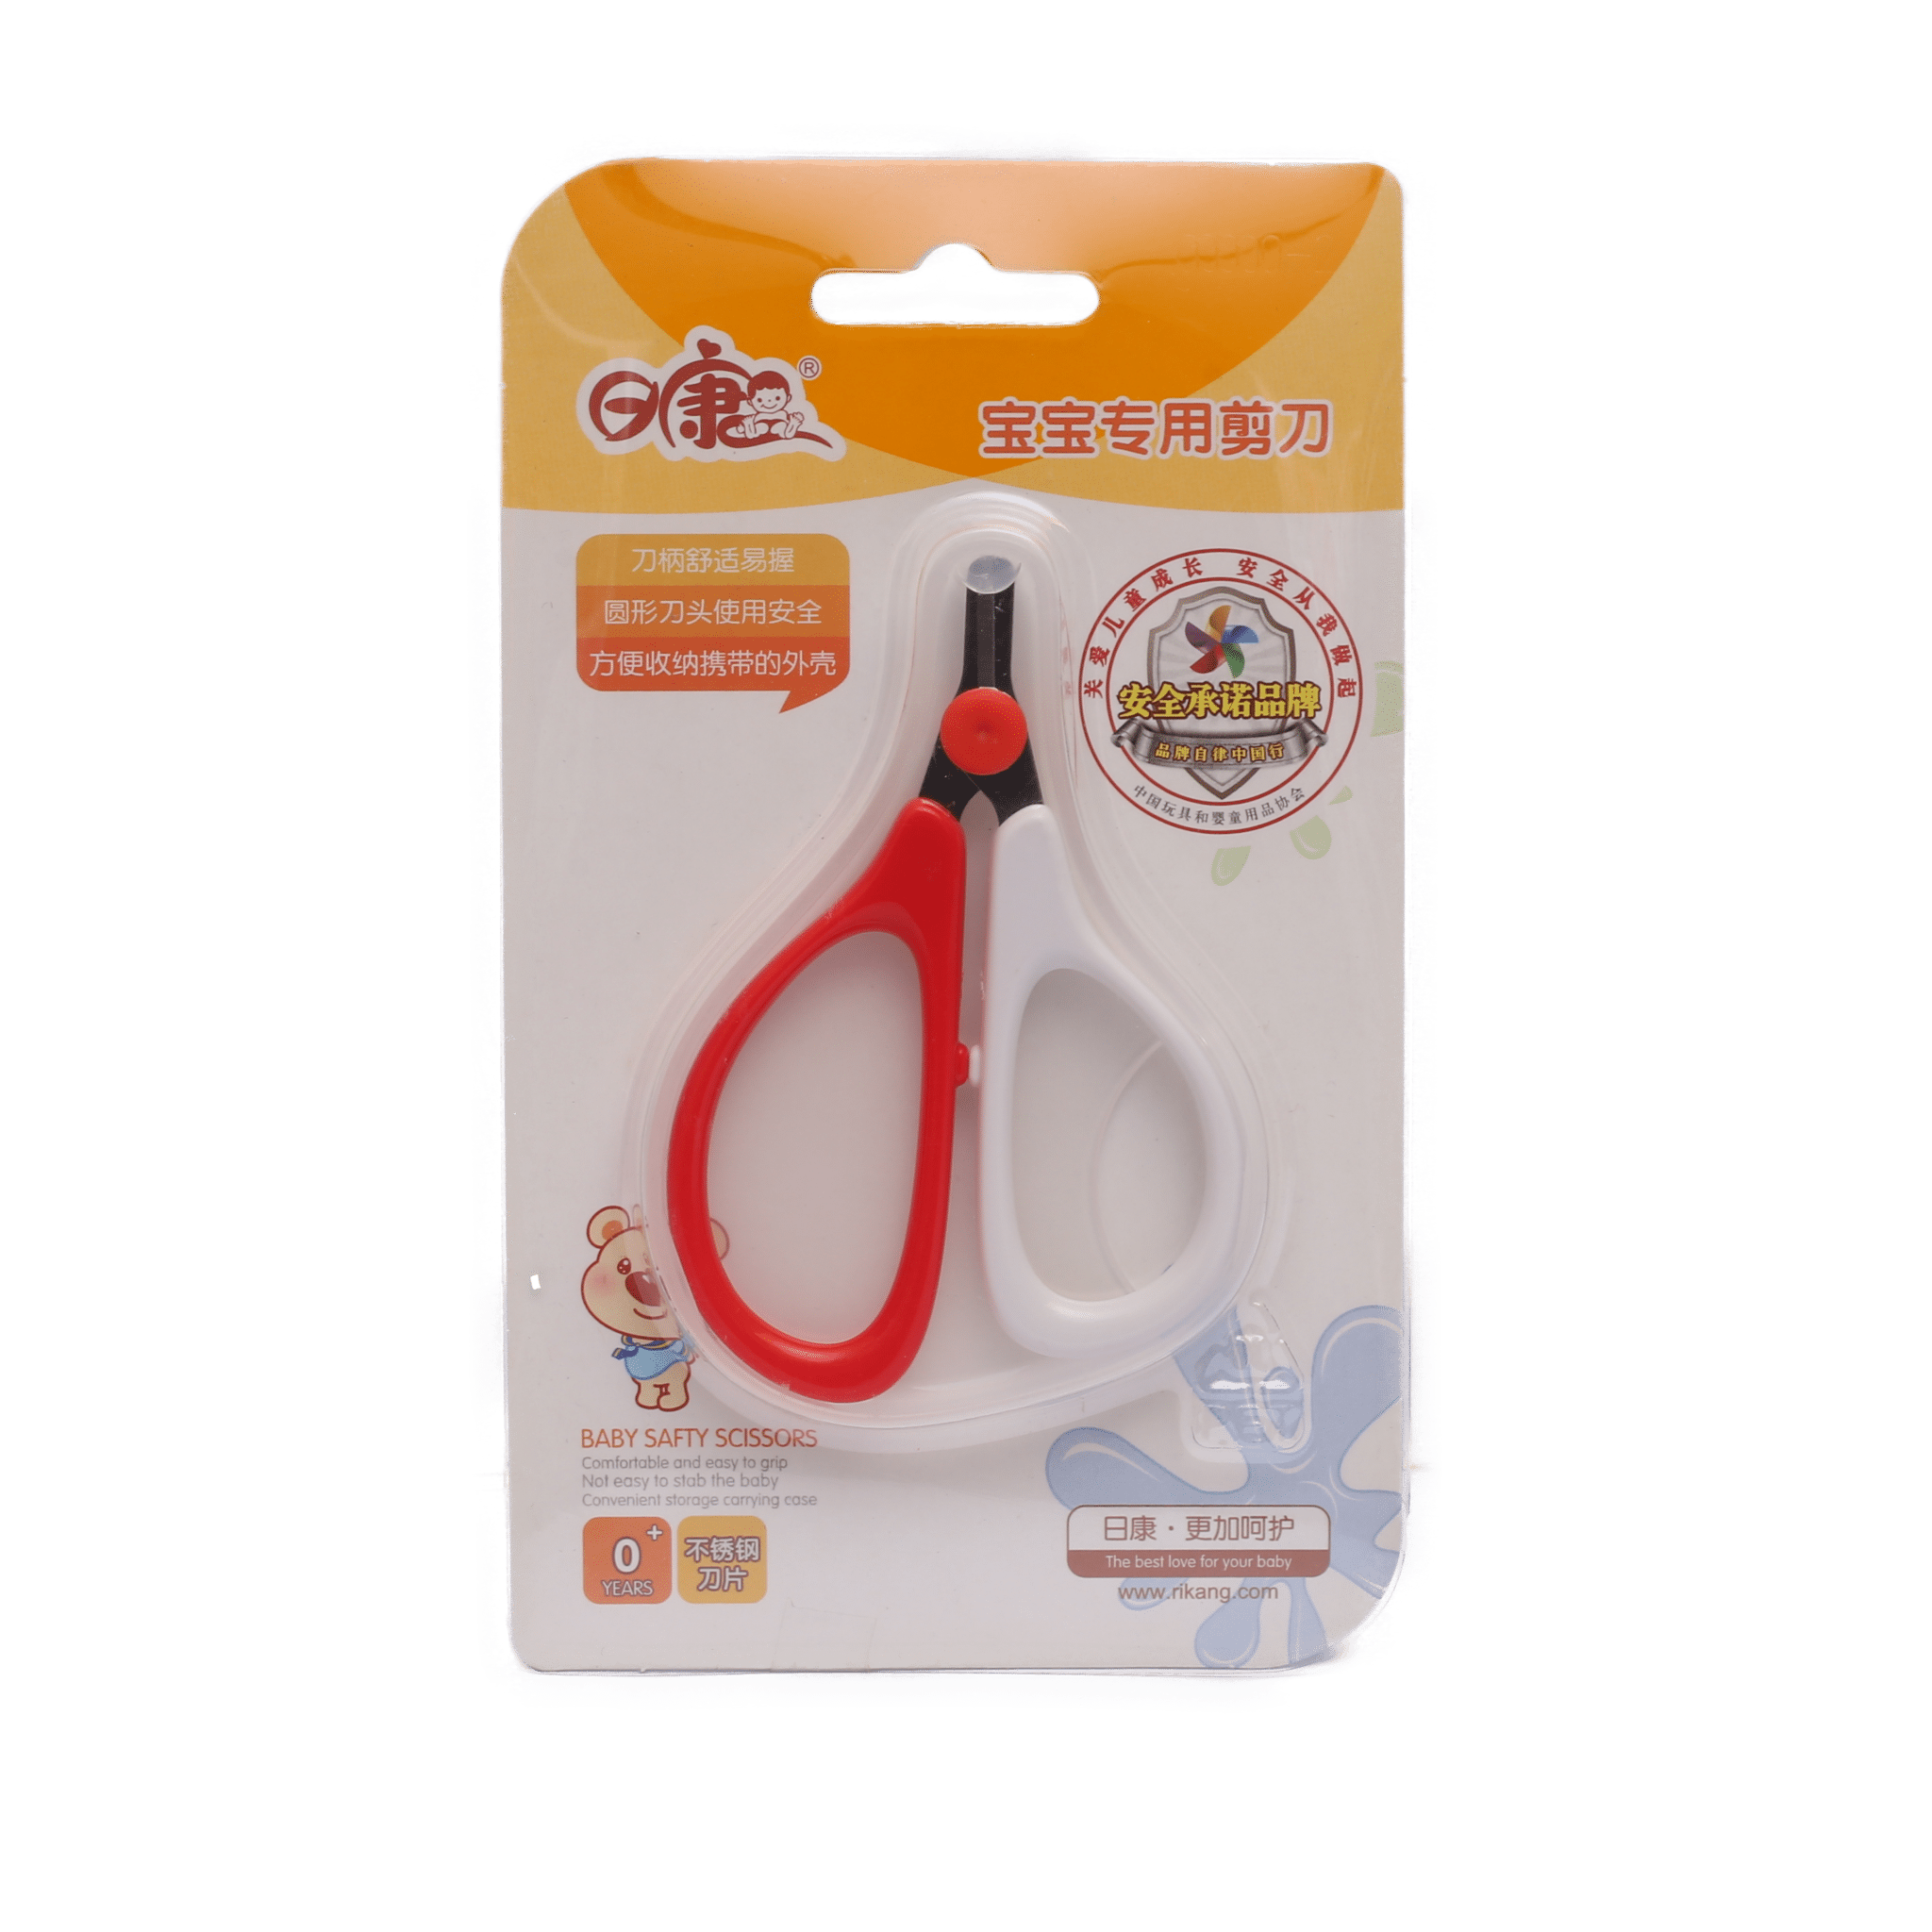 Baby Safety Scissor with Case